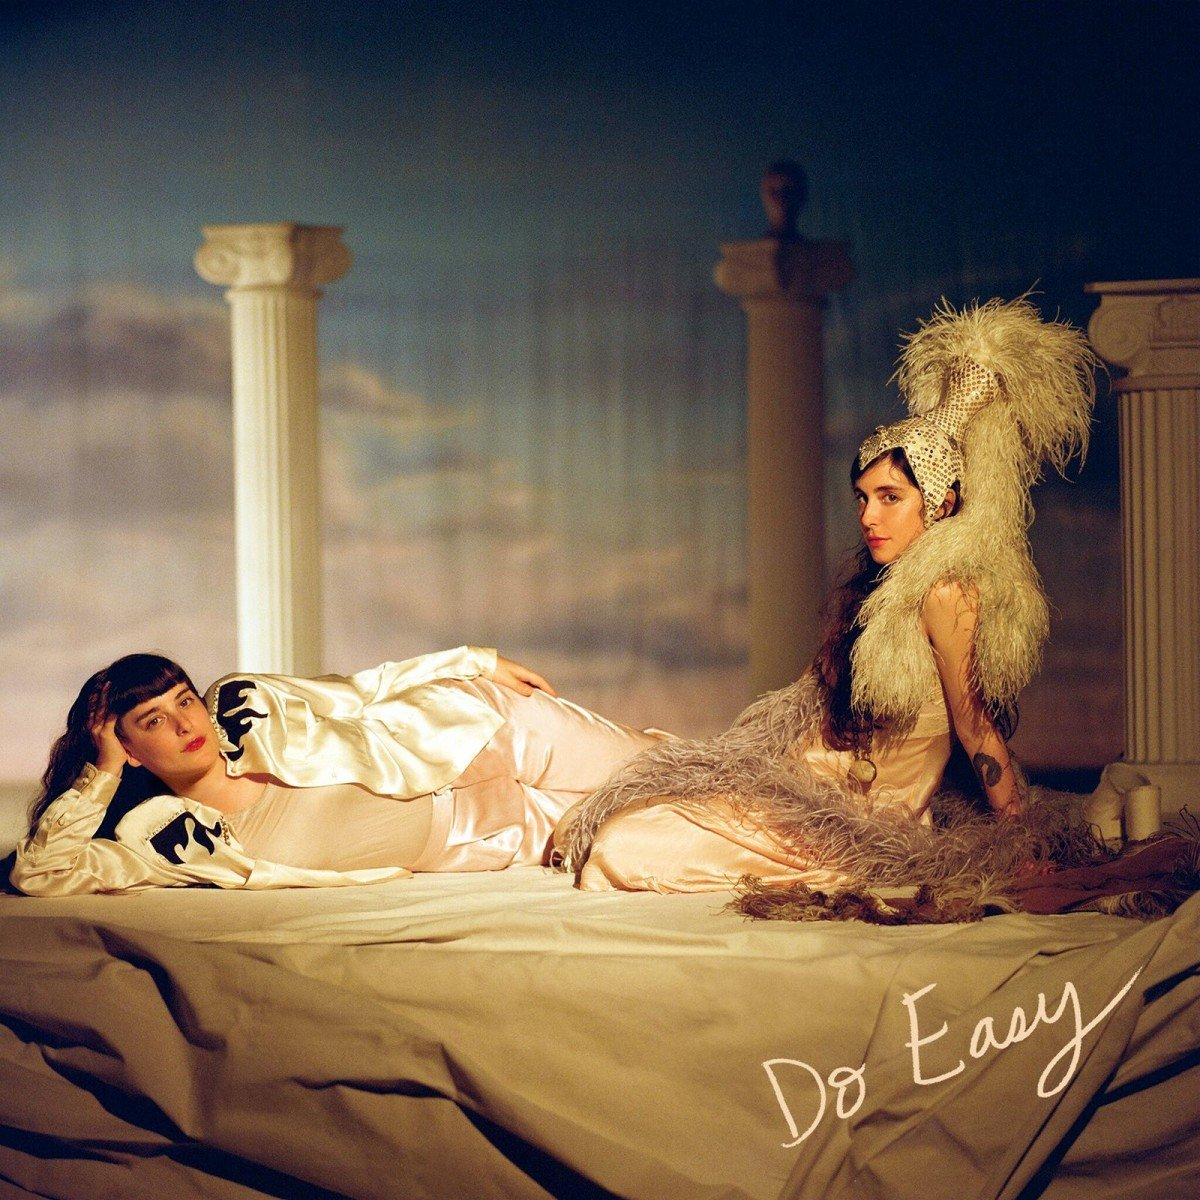 Do Easy by Tasseomancy